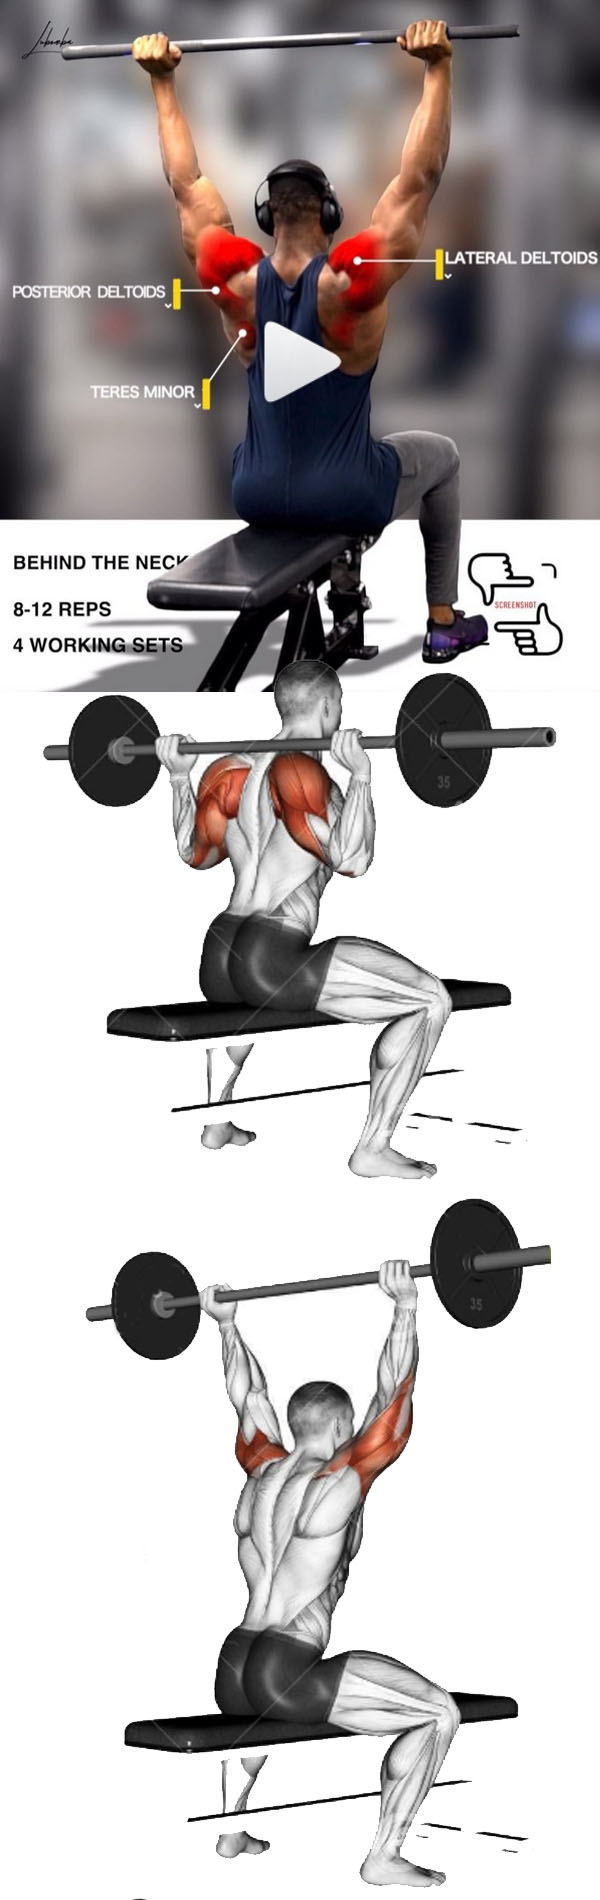 Behind The Neck Press (Smith Machine)